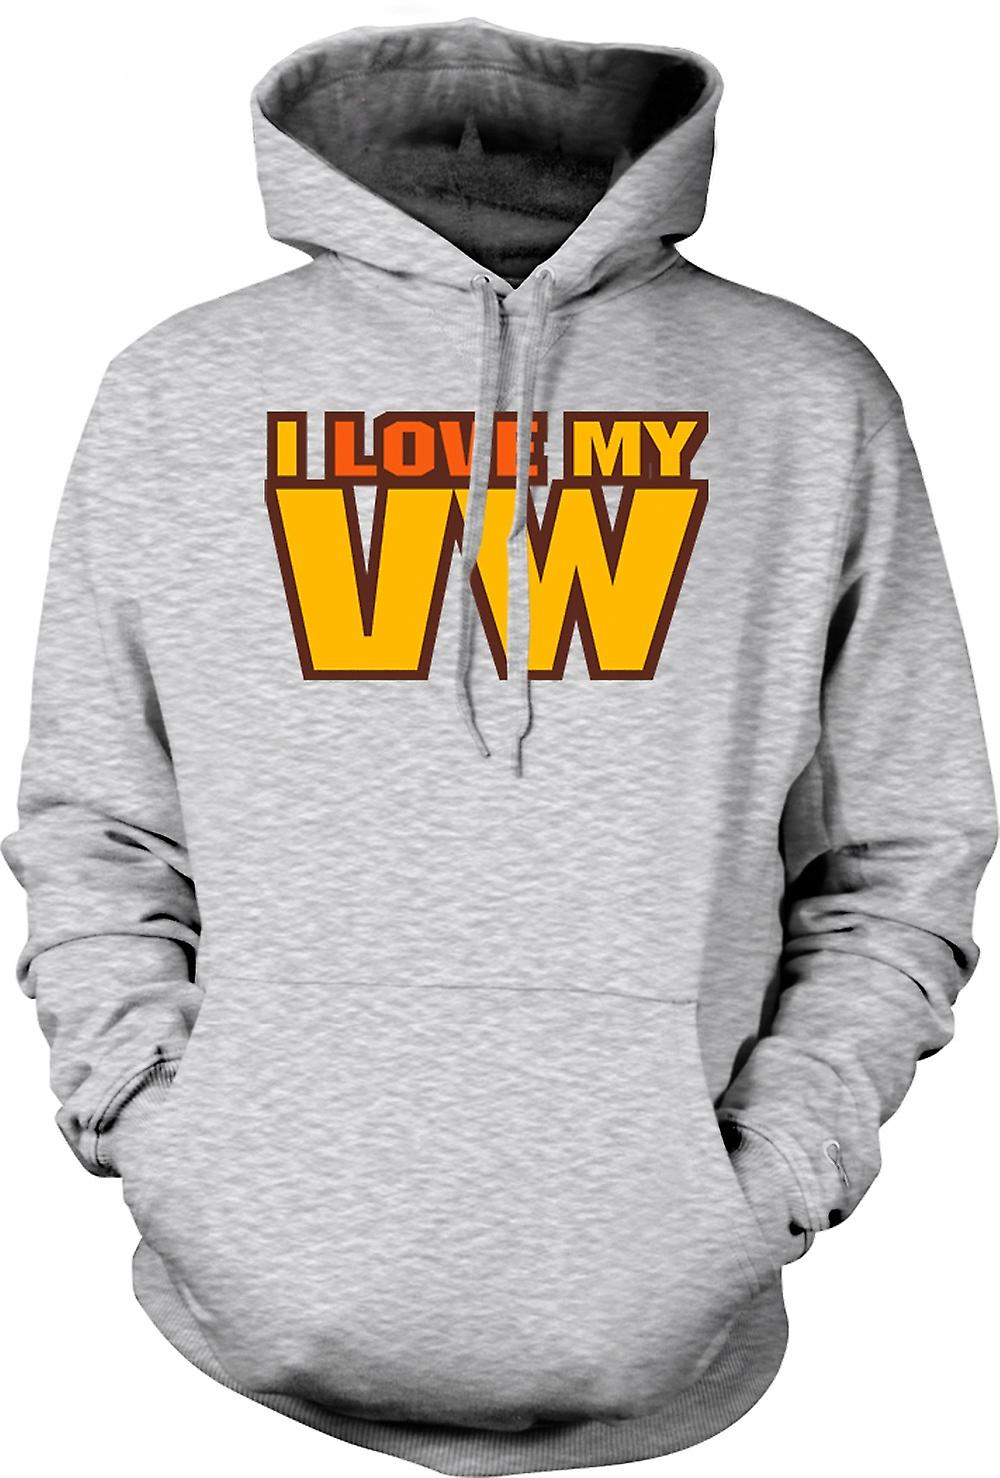 Mens Hoodie - I Love My VW - Car Enthusiast